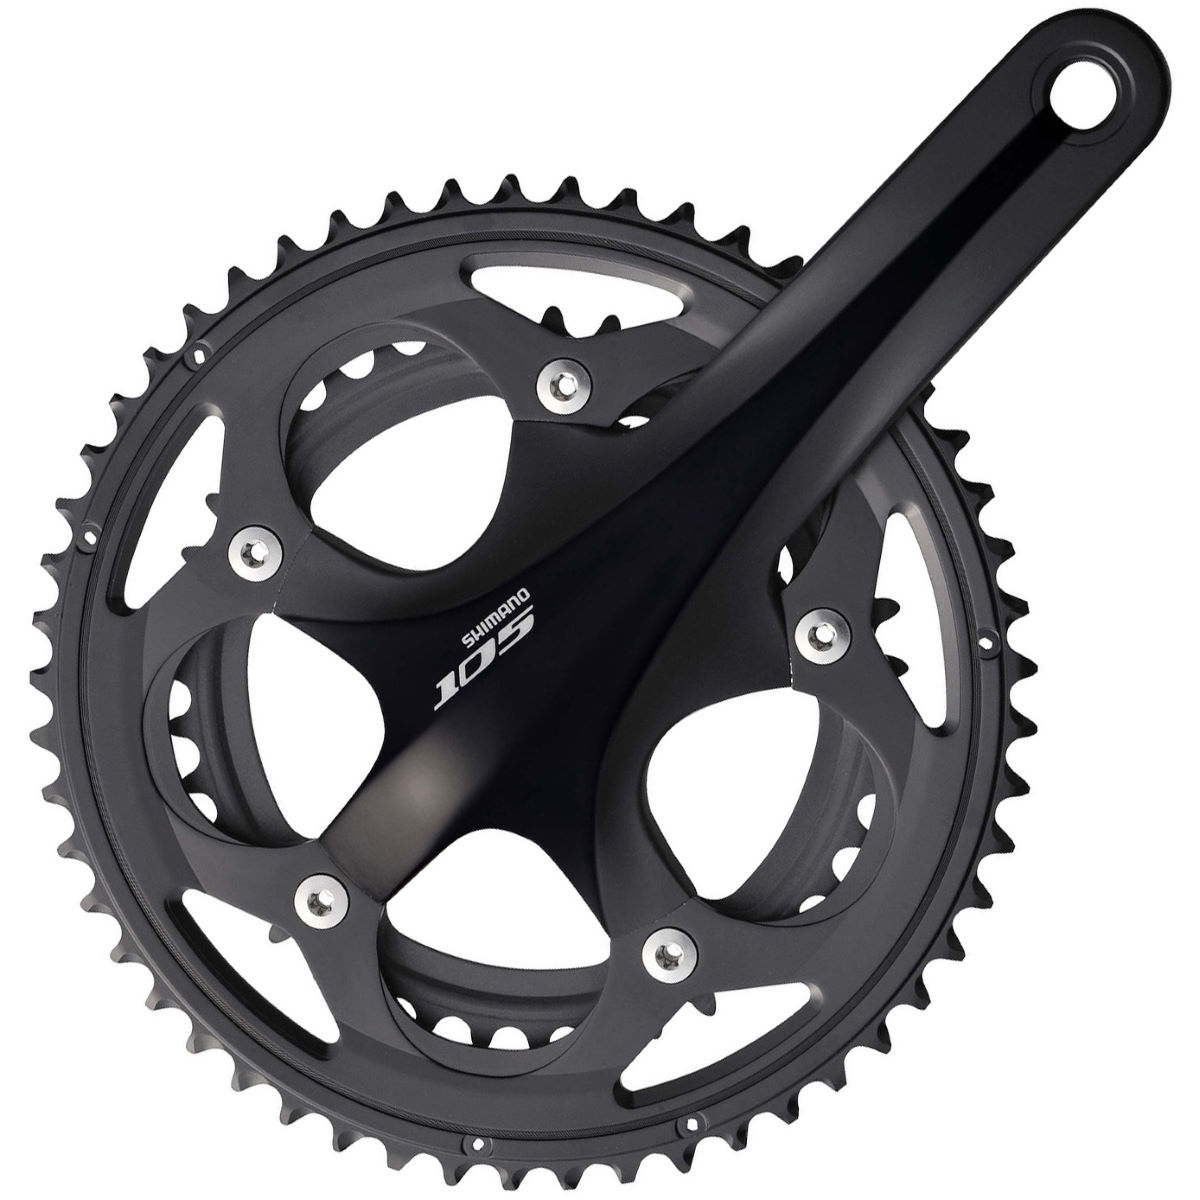 Shimano 105 5750 10 Speed Compact Chainset